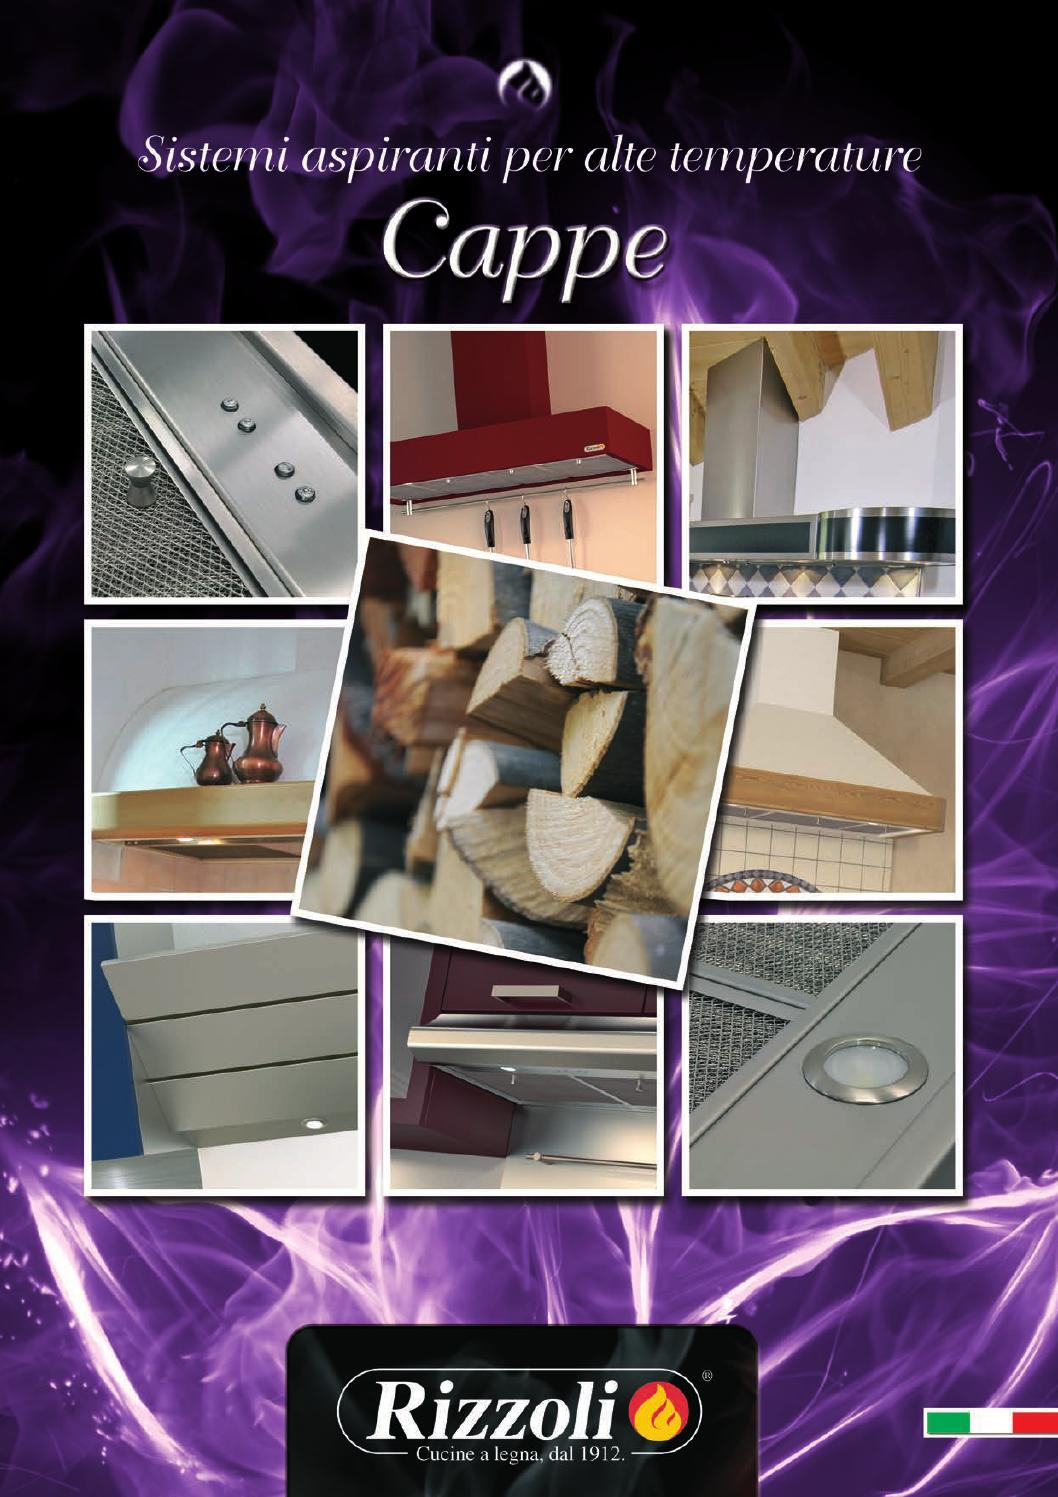 Catalogo Cappe by Rizzoli - issuu